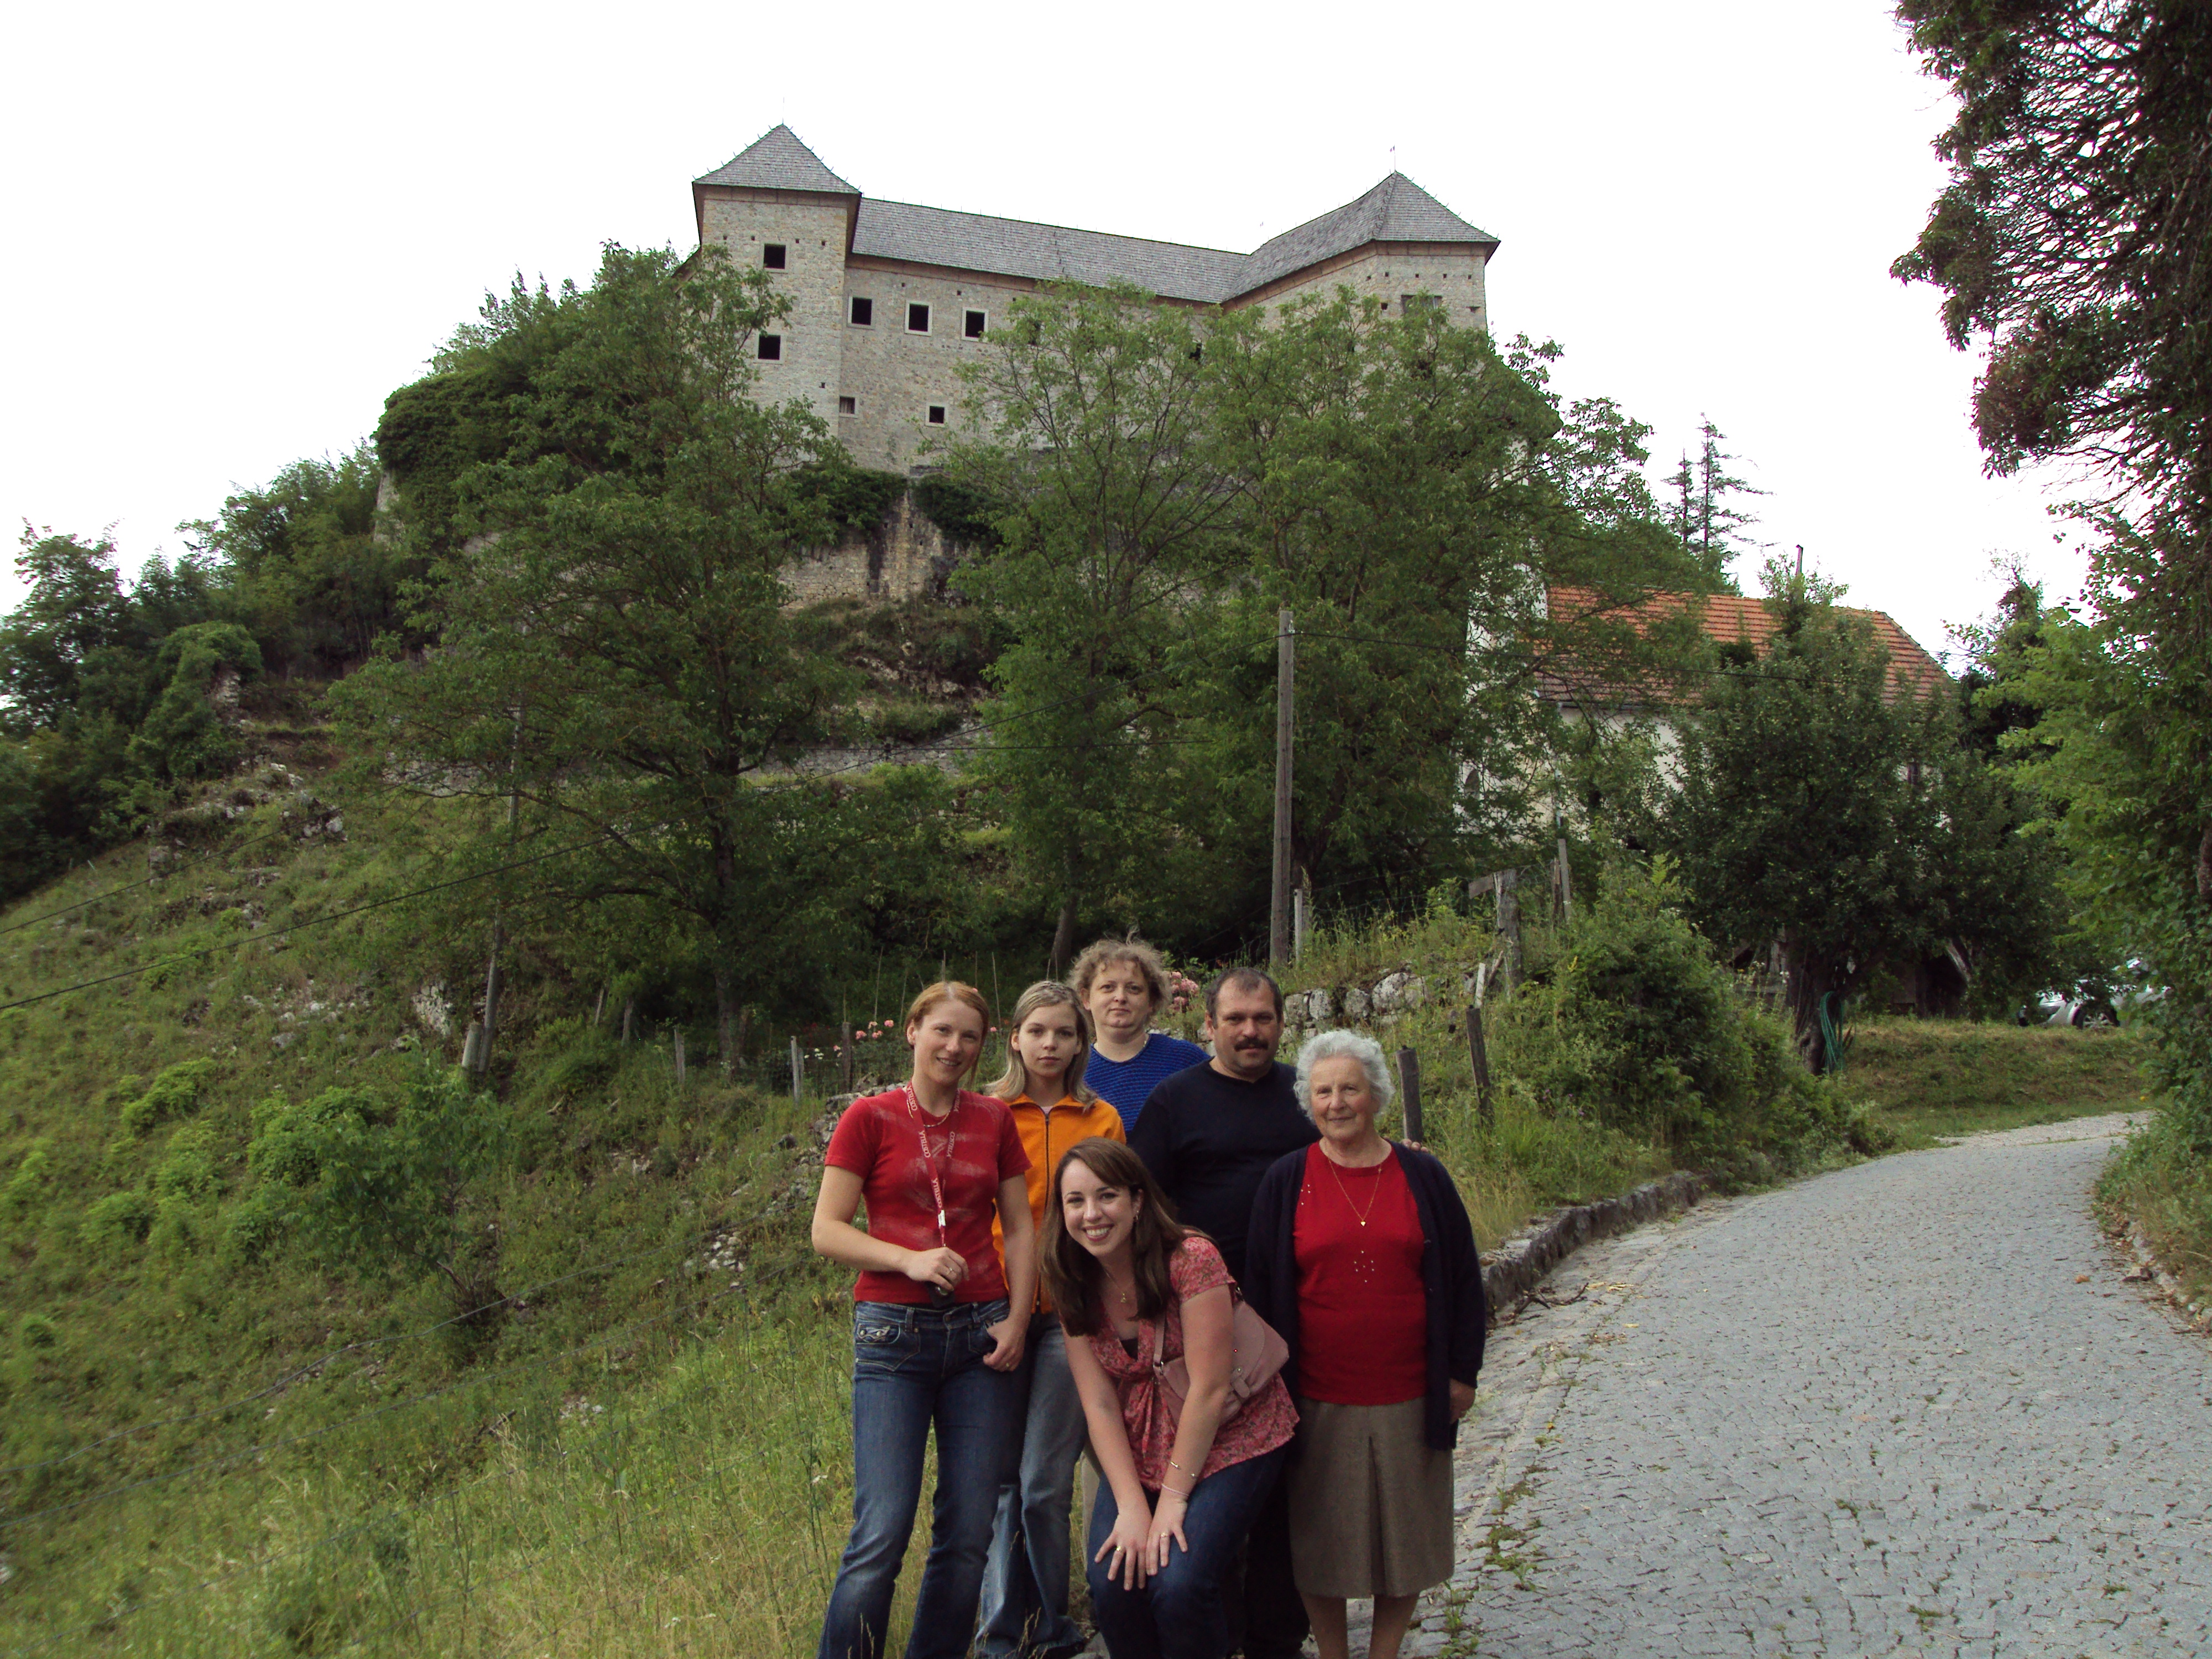 With family at the castle in the Kostel region of Slovenija last weekend.